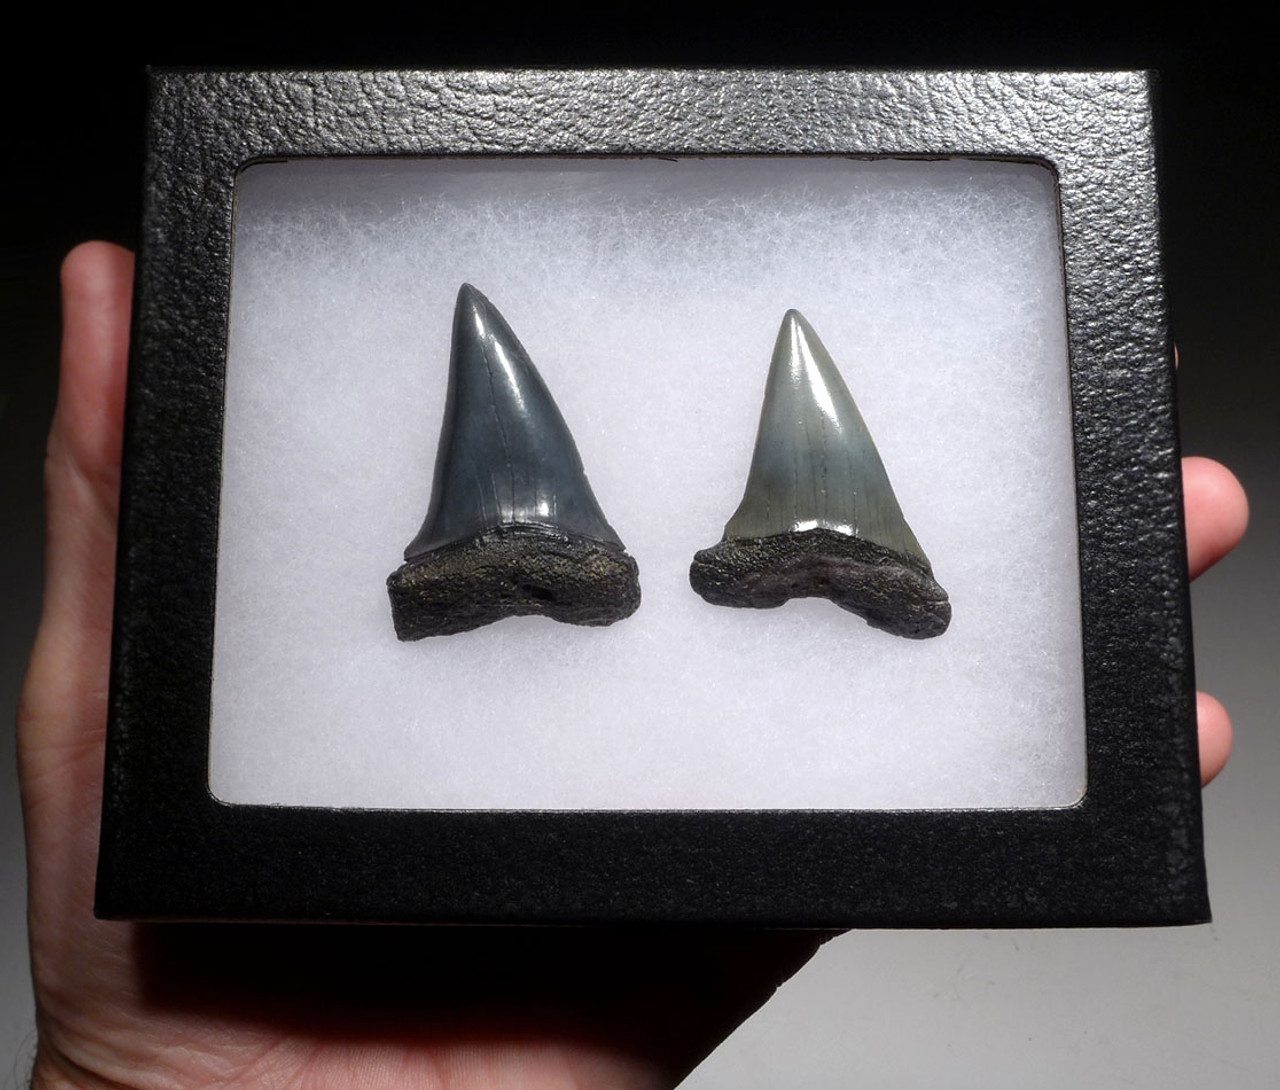 TWO PREHISTORIC MAKO ISURUS SHARK FOSSIL TEETH FROM THE LOWER JAW *SHX064